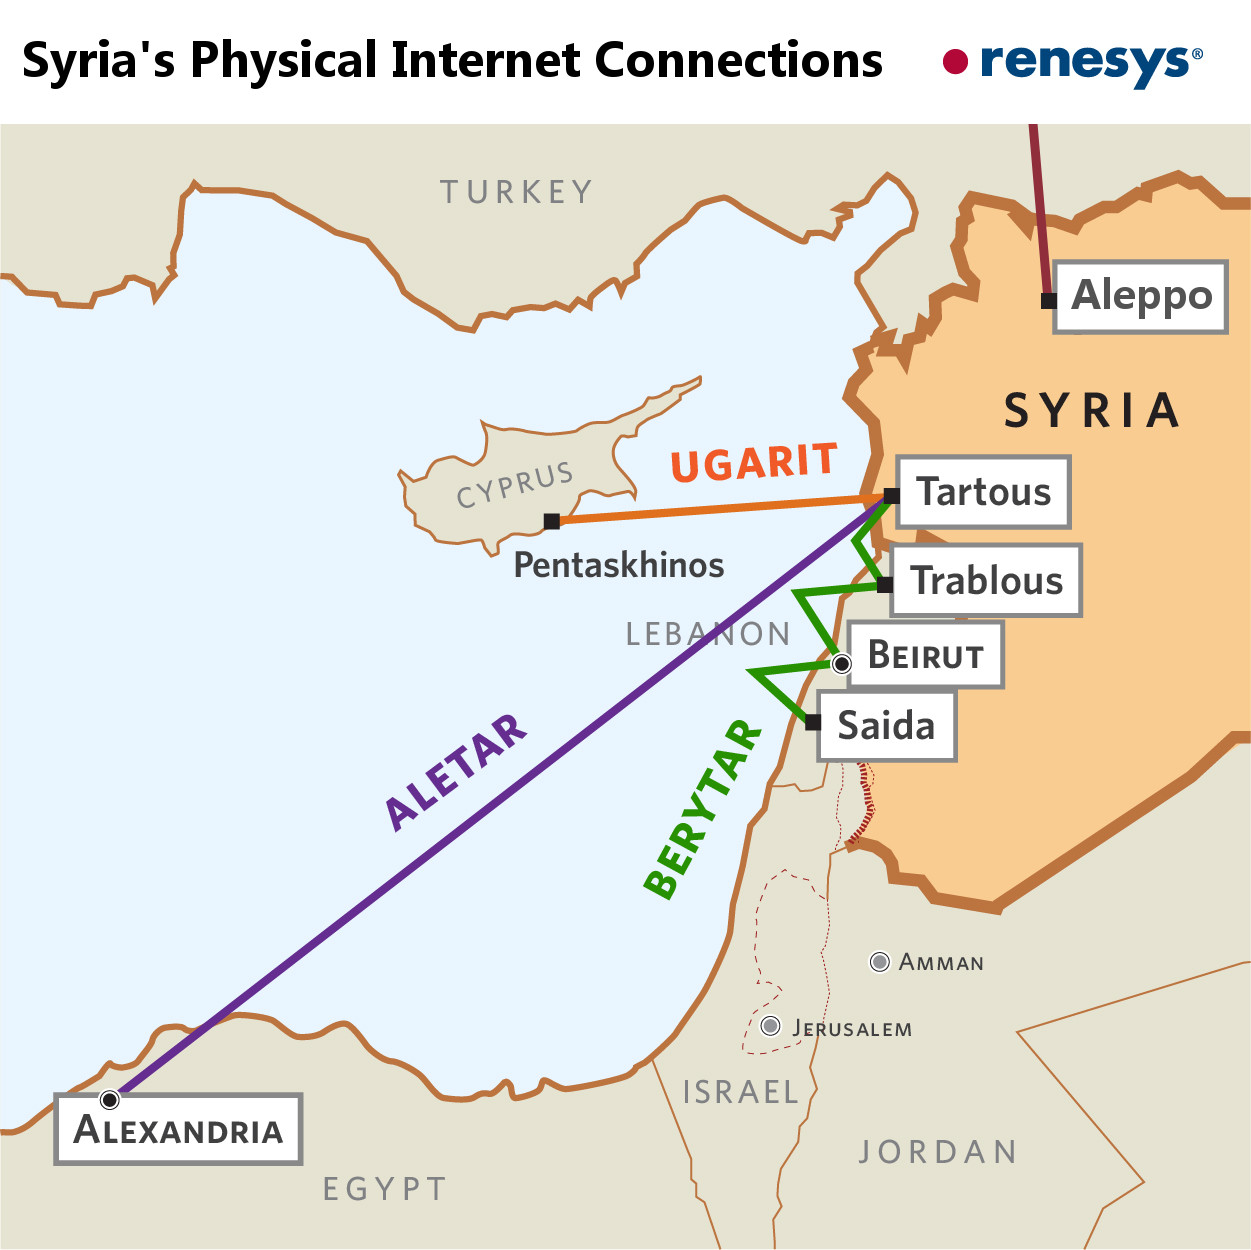 40 Maps That Explain The Internet Broadband Connection Sharing Diagram Syrias Largest City Dropped Off In 2013